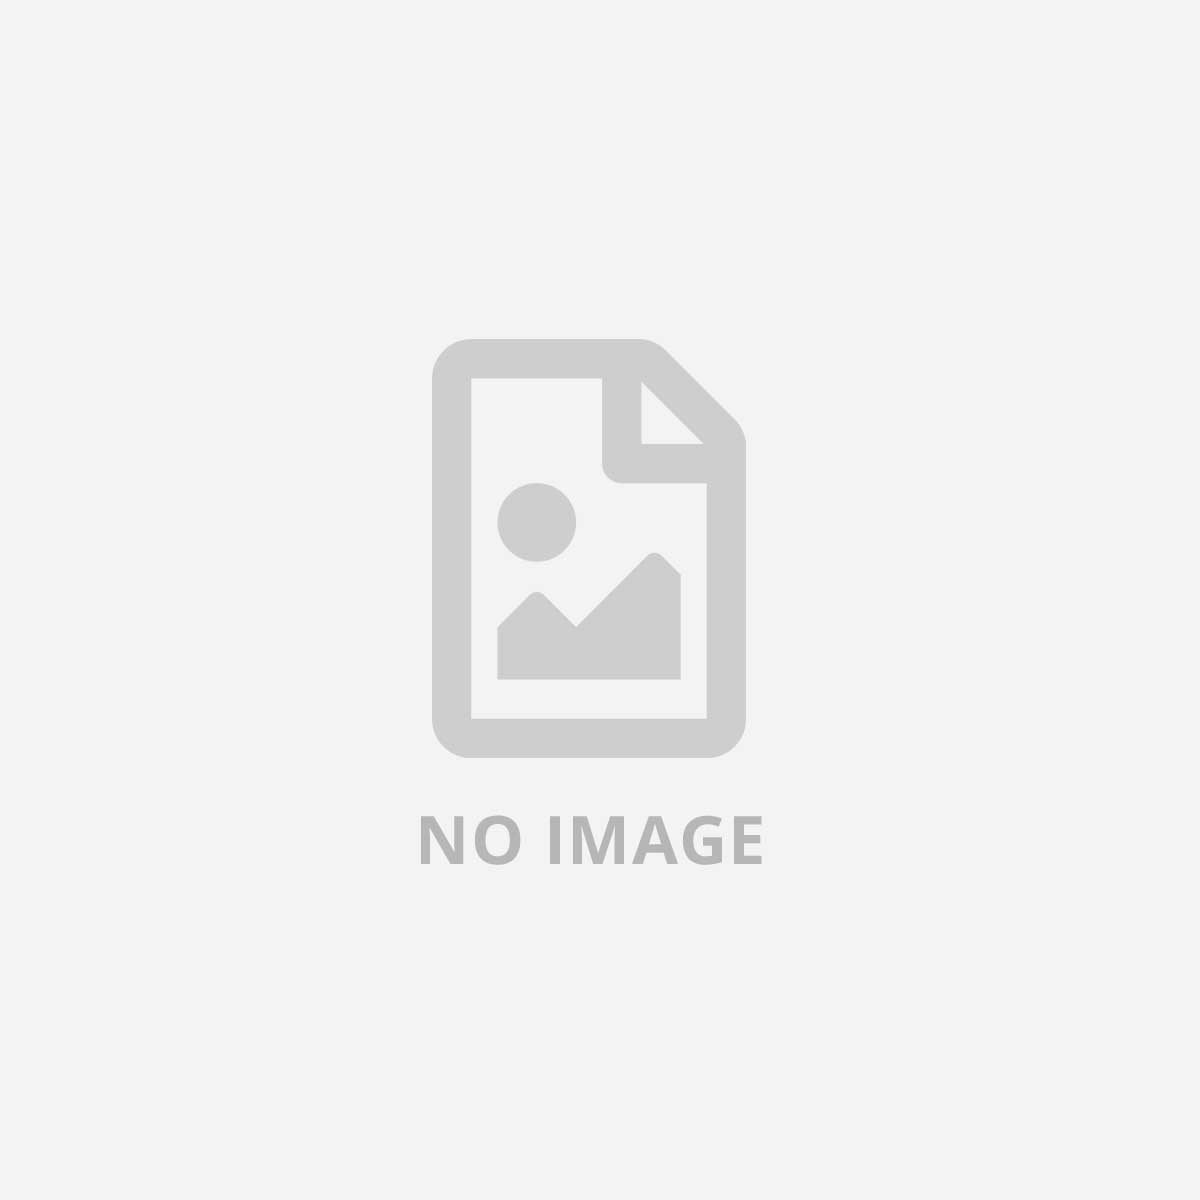 KINGSTON 16GB MICSD CANVASELECTPLUS+ADP